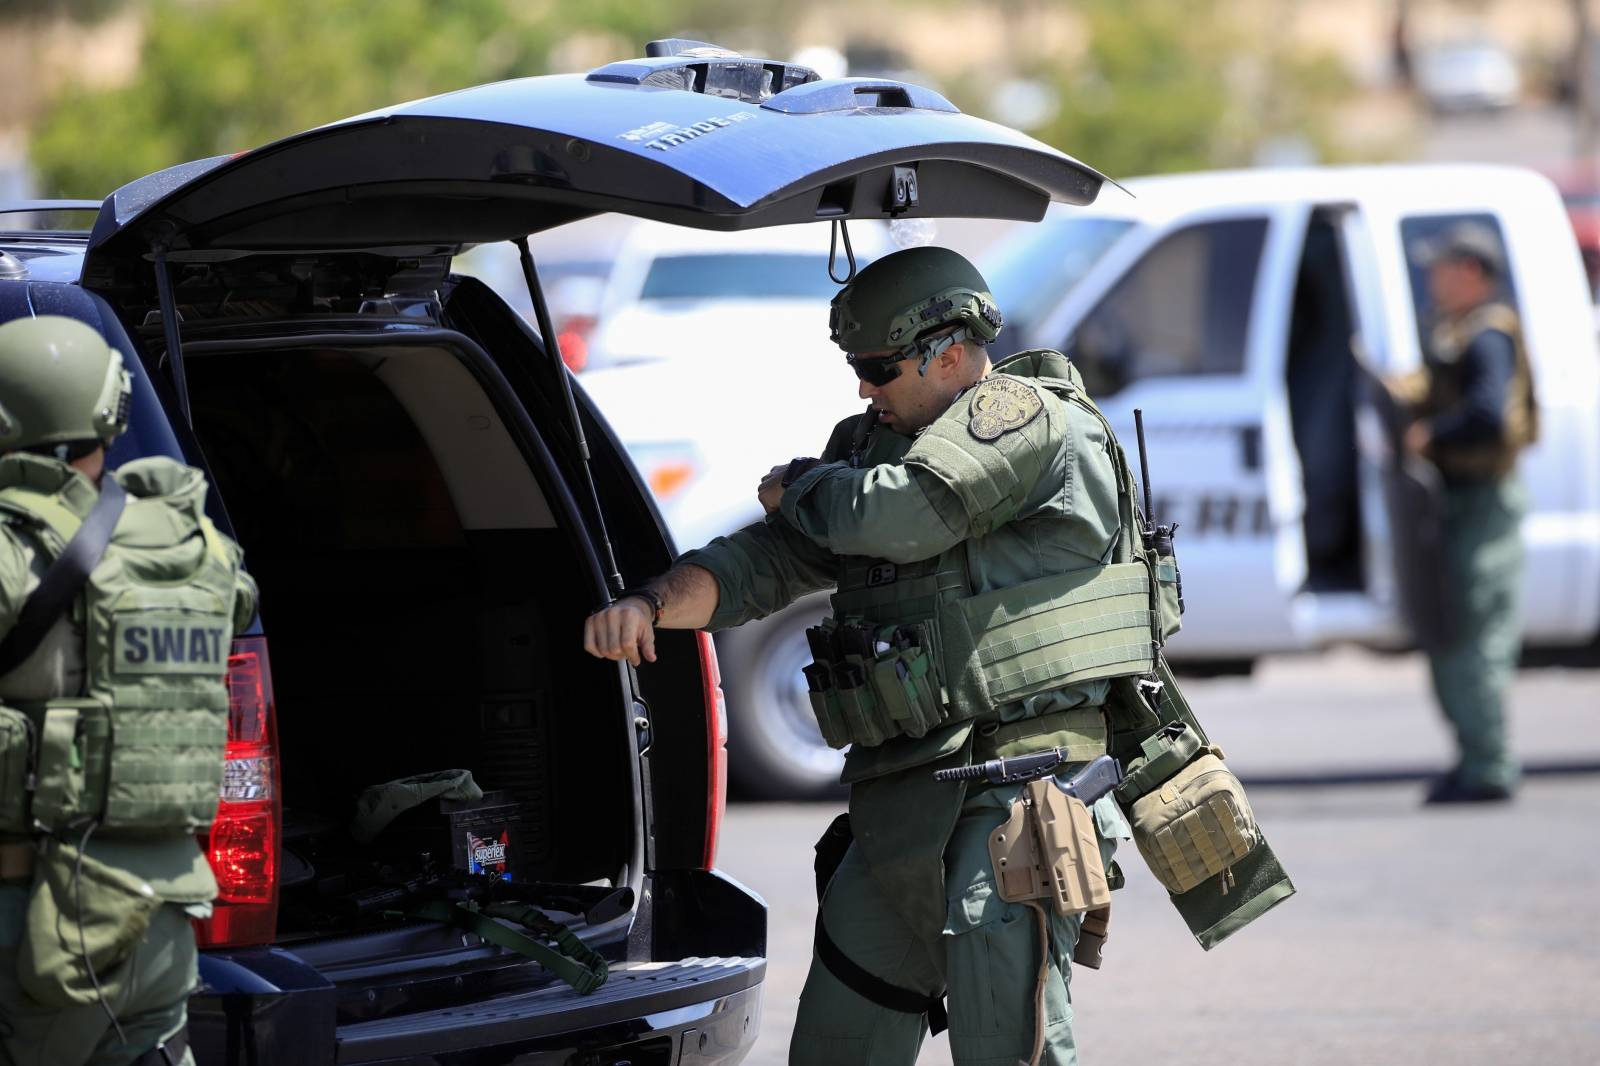 Police SWAT team members prepare after a mass shooting at a Walmart in El Paso